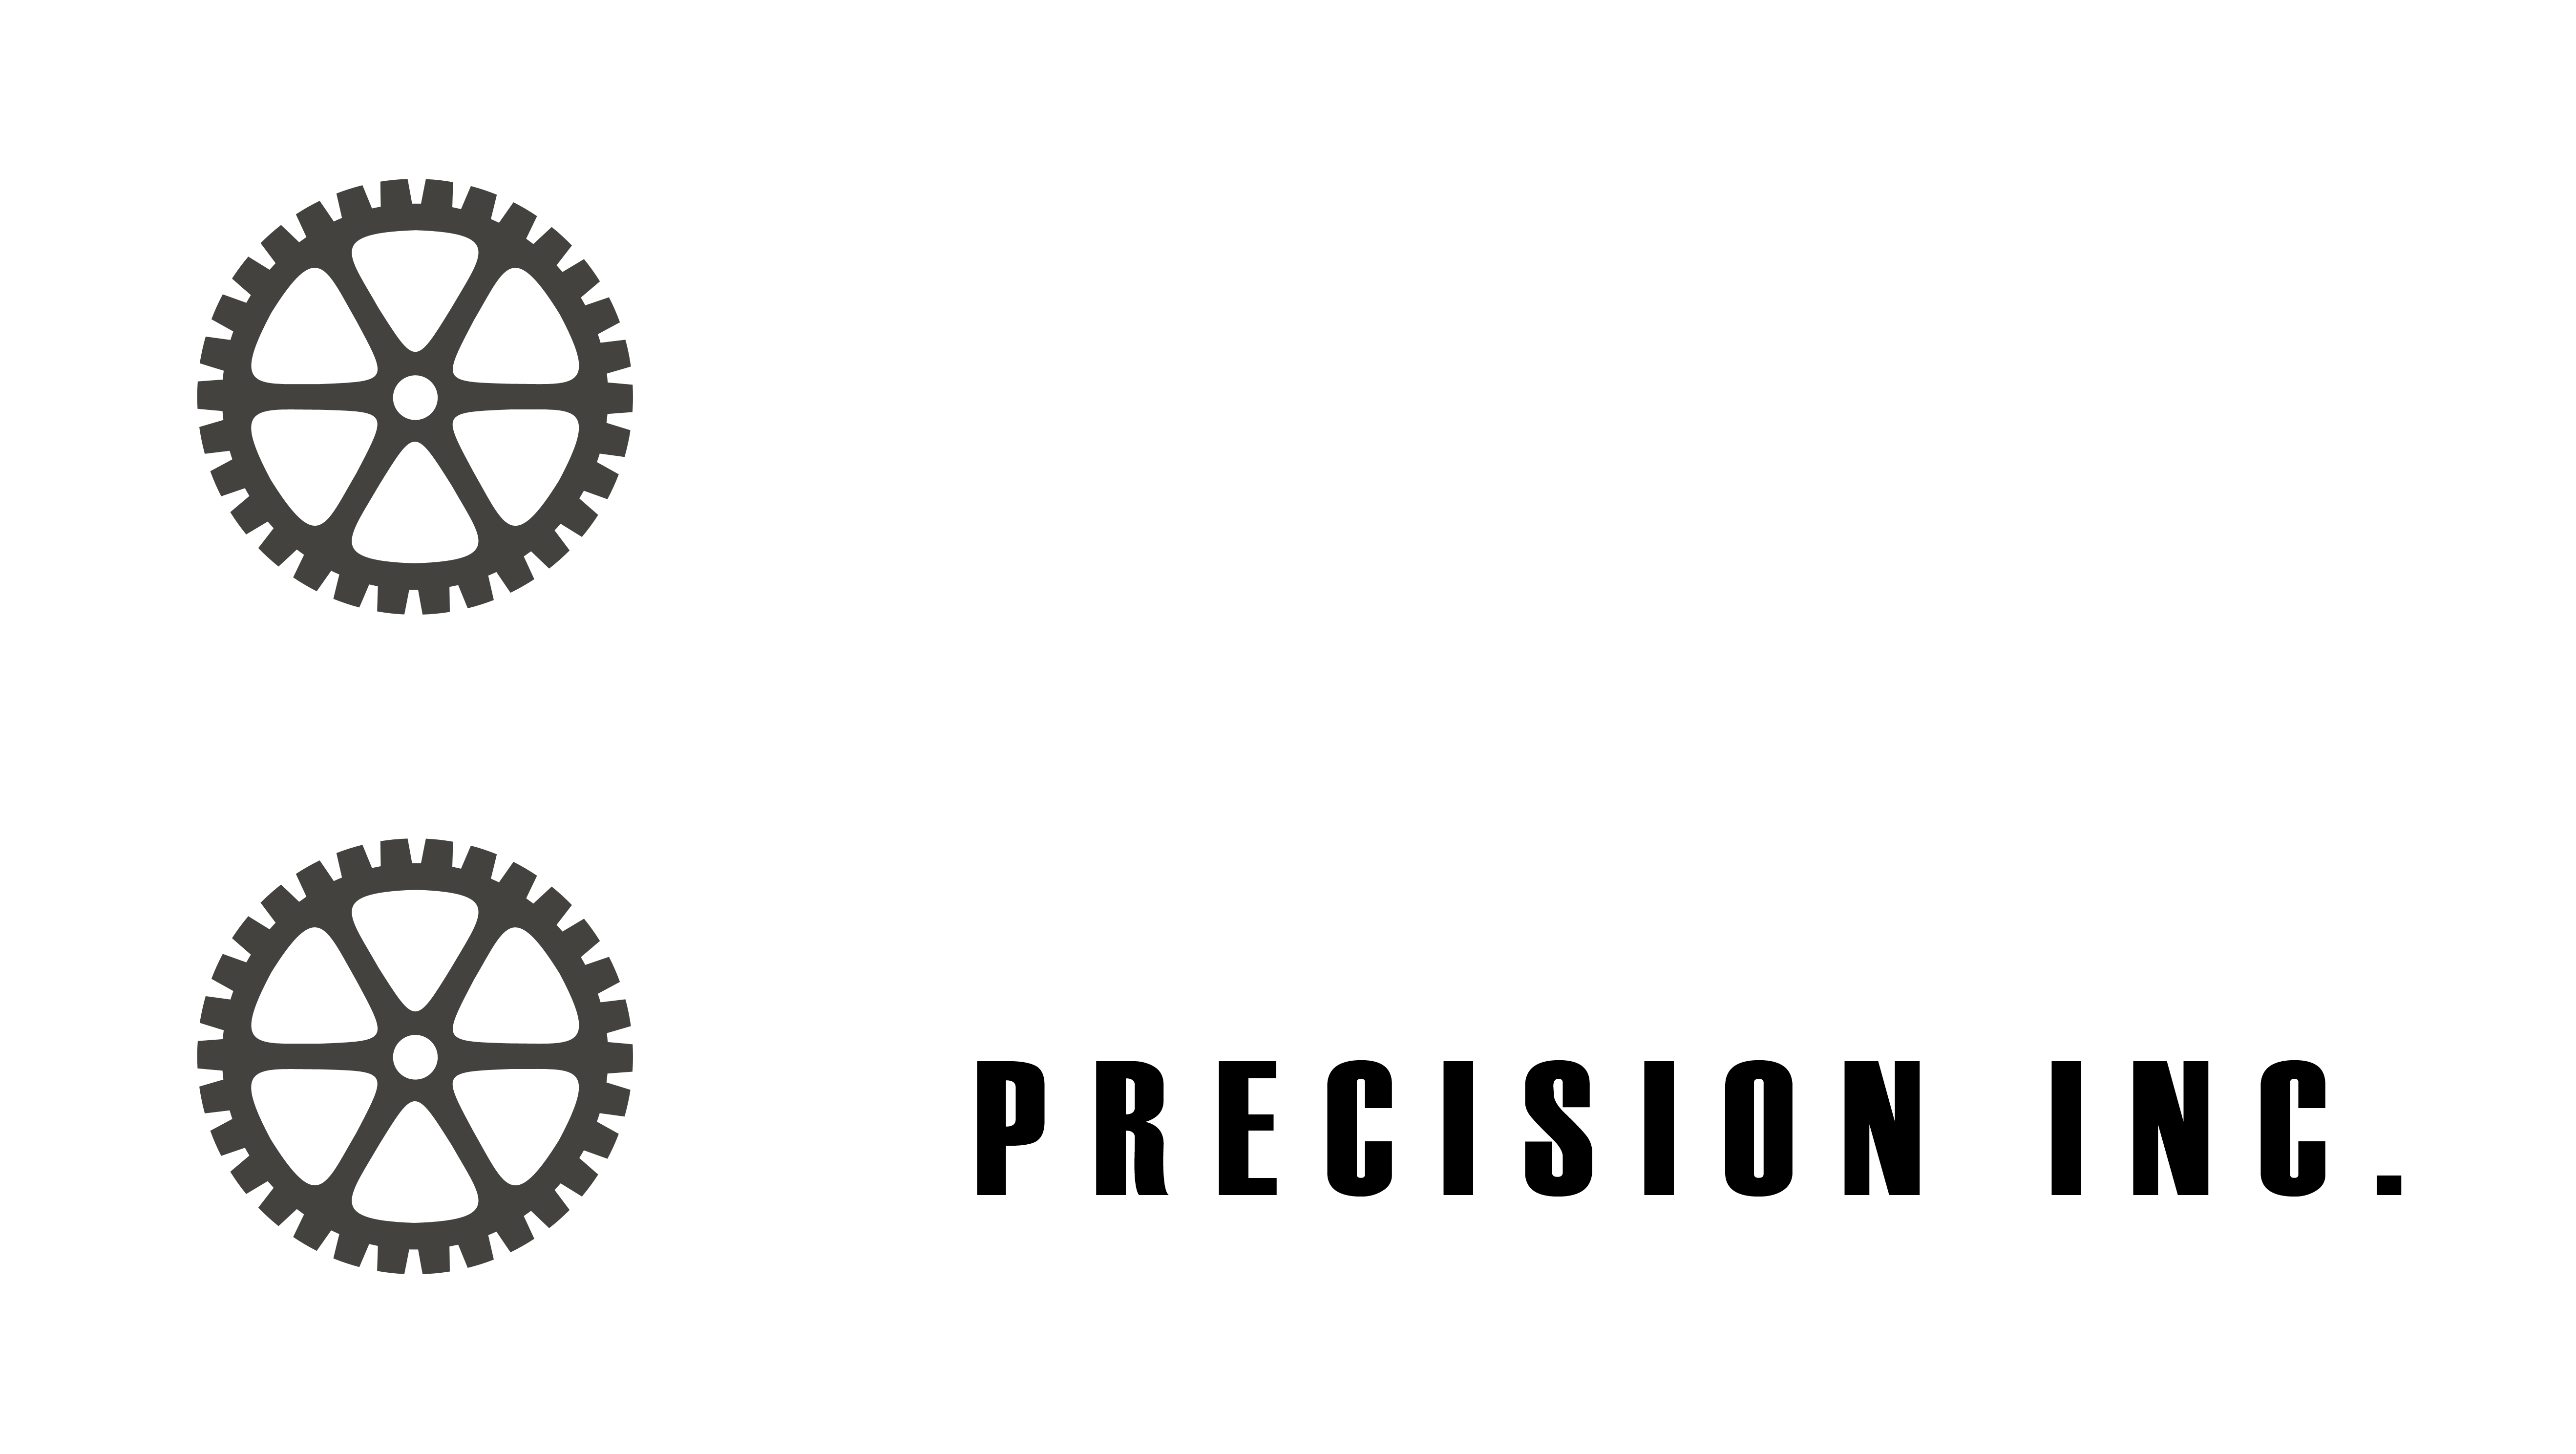 Sherdil Precision Inc.